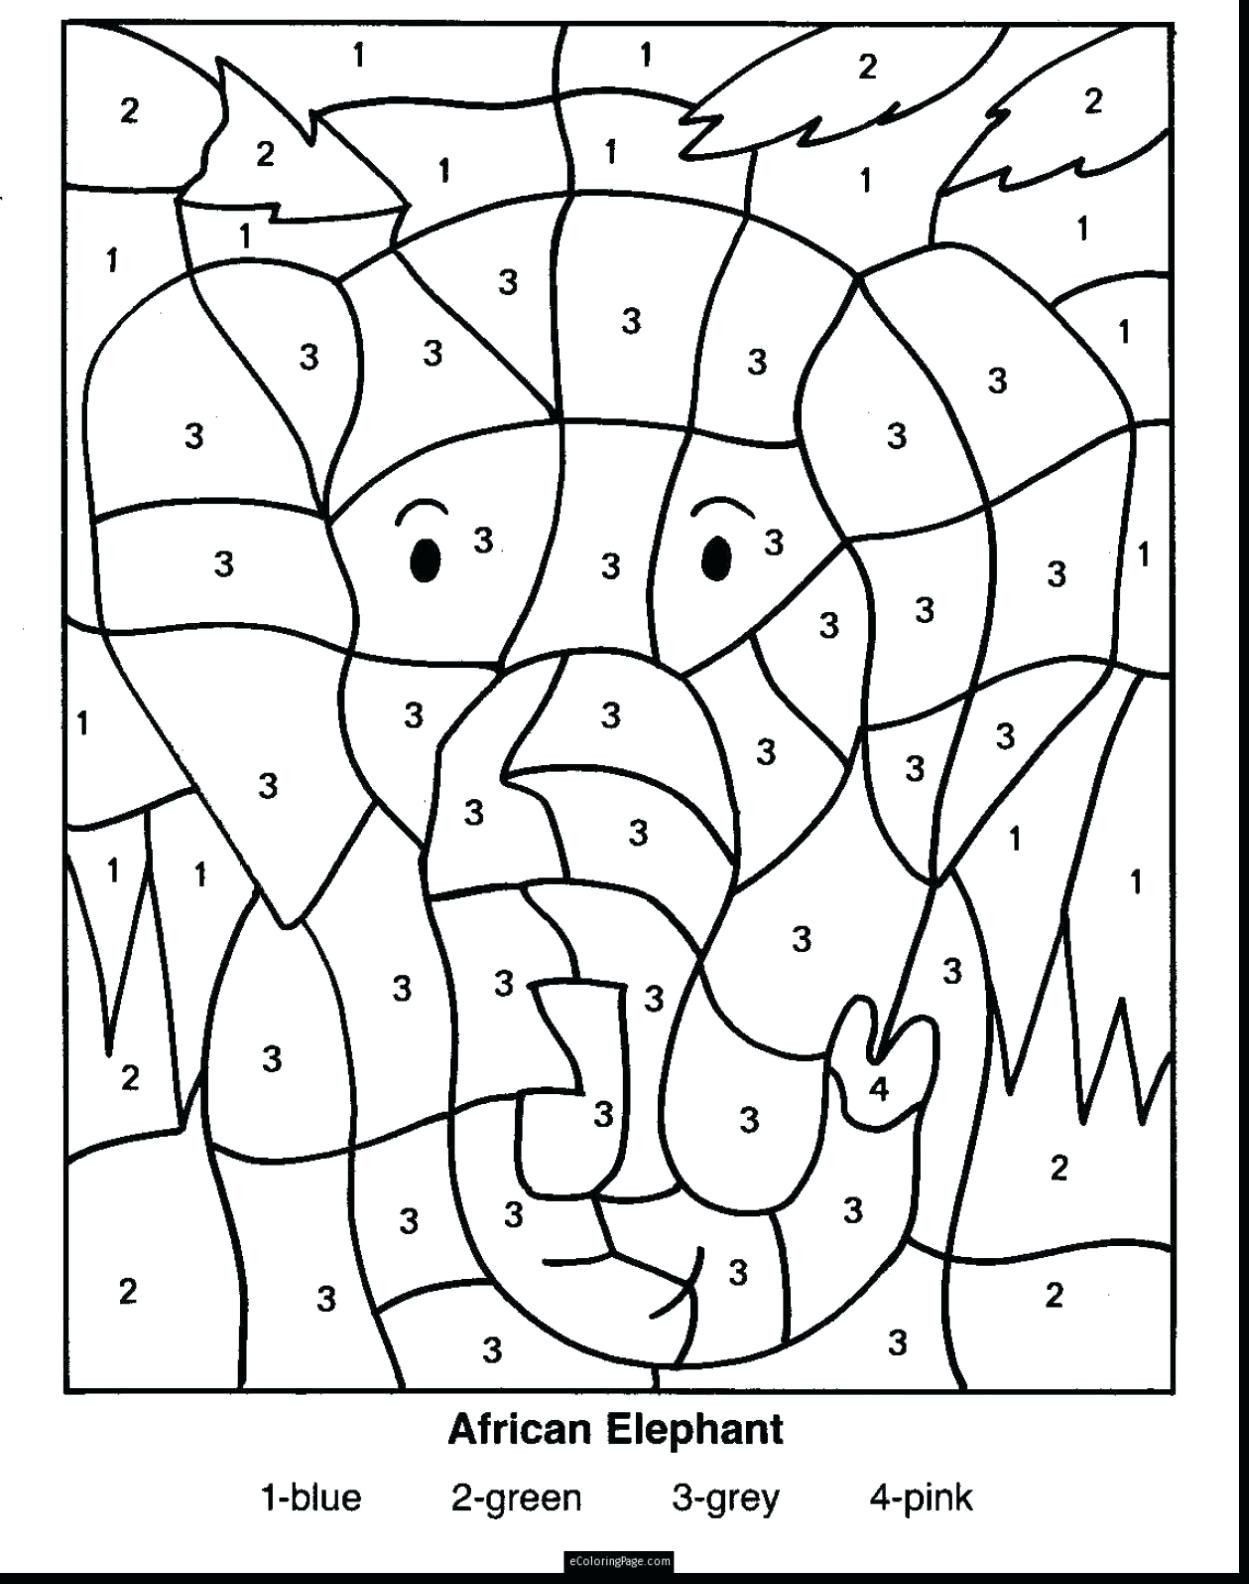 Division Coloring Worksheets 3rd Grade 3 Free Math Worksheets Third Grade 3 Division Division Facts